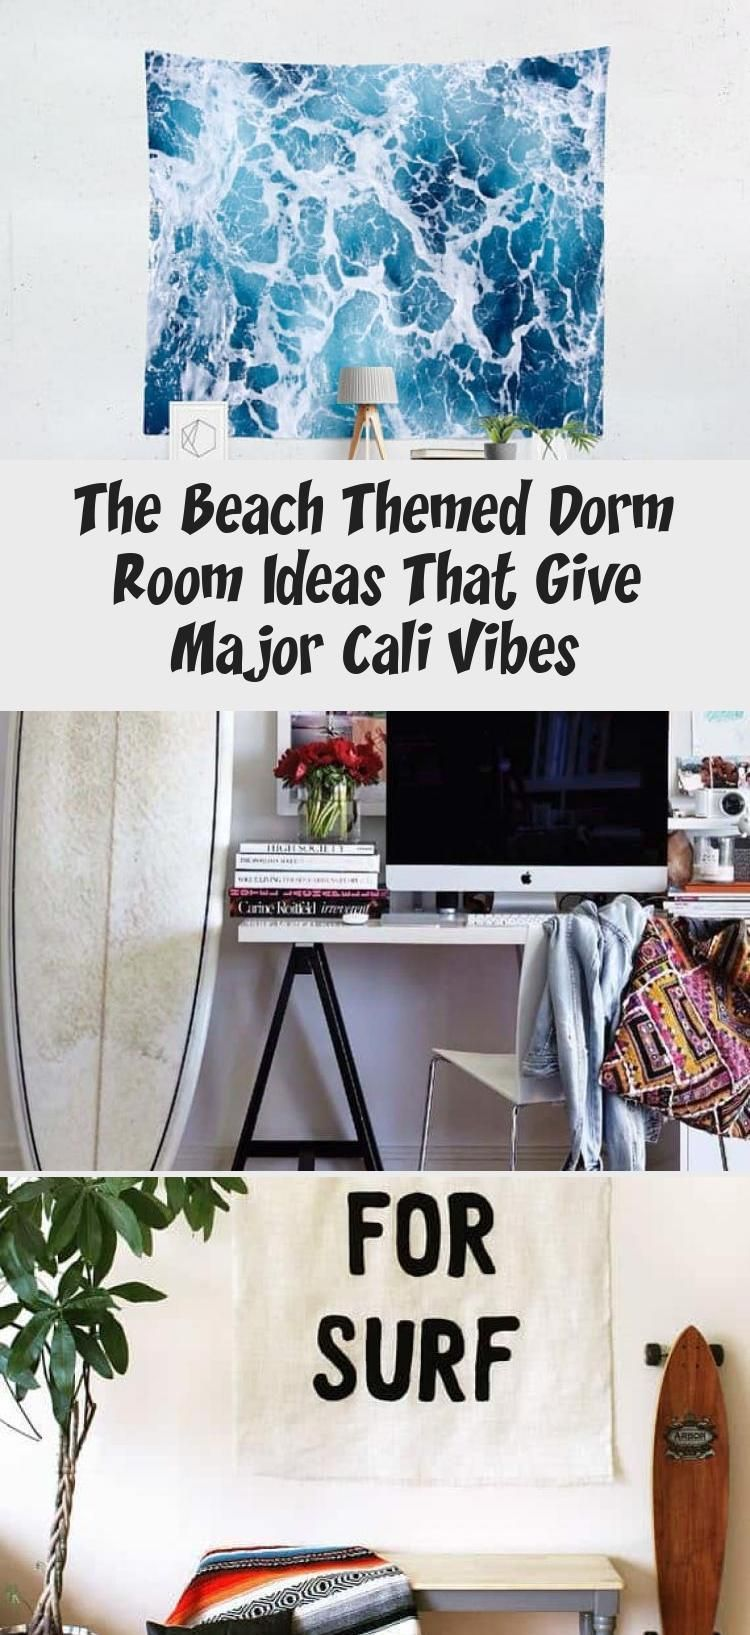 The Beach Themed Dorm Room Ideas That Give Major Cali Vibes  İdeas This beach themed dorm room exudes a mix of ocean and tropical vibes